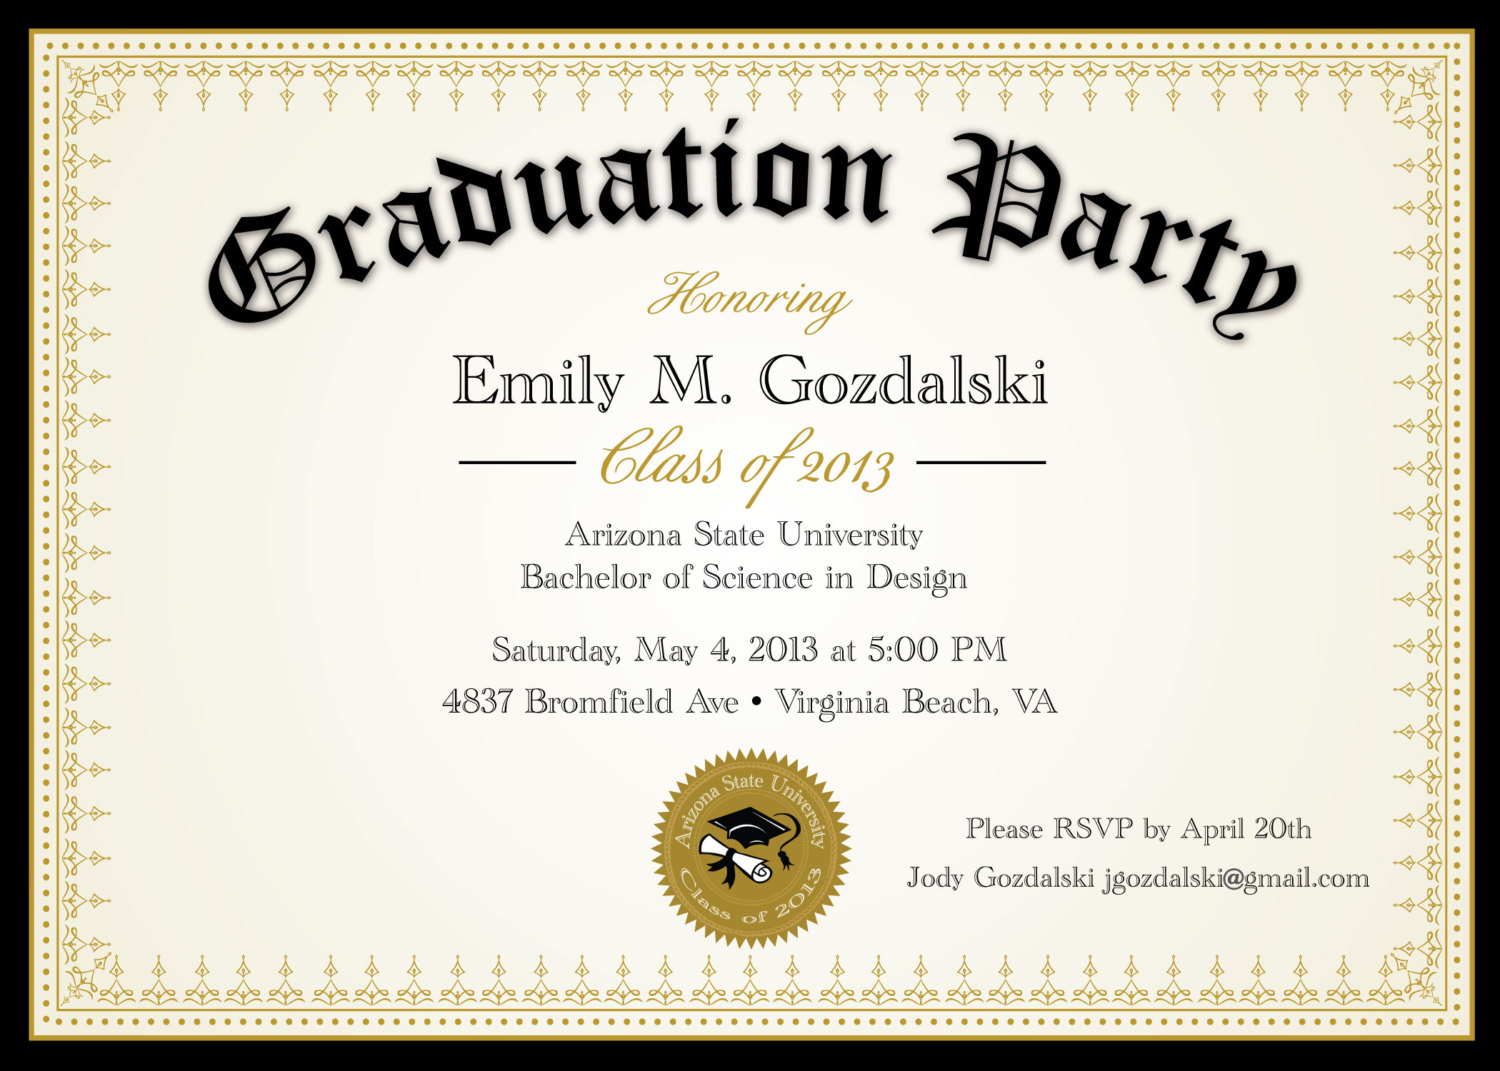 Invitation Letter For Graduation Party - Mickey Mouse Invitations ...